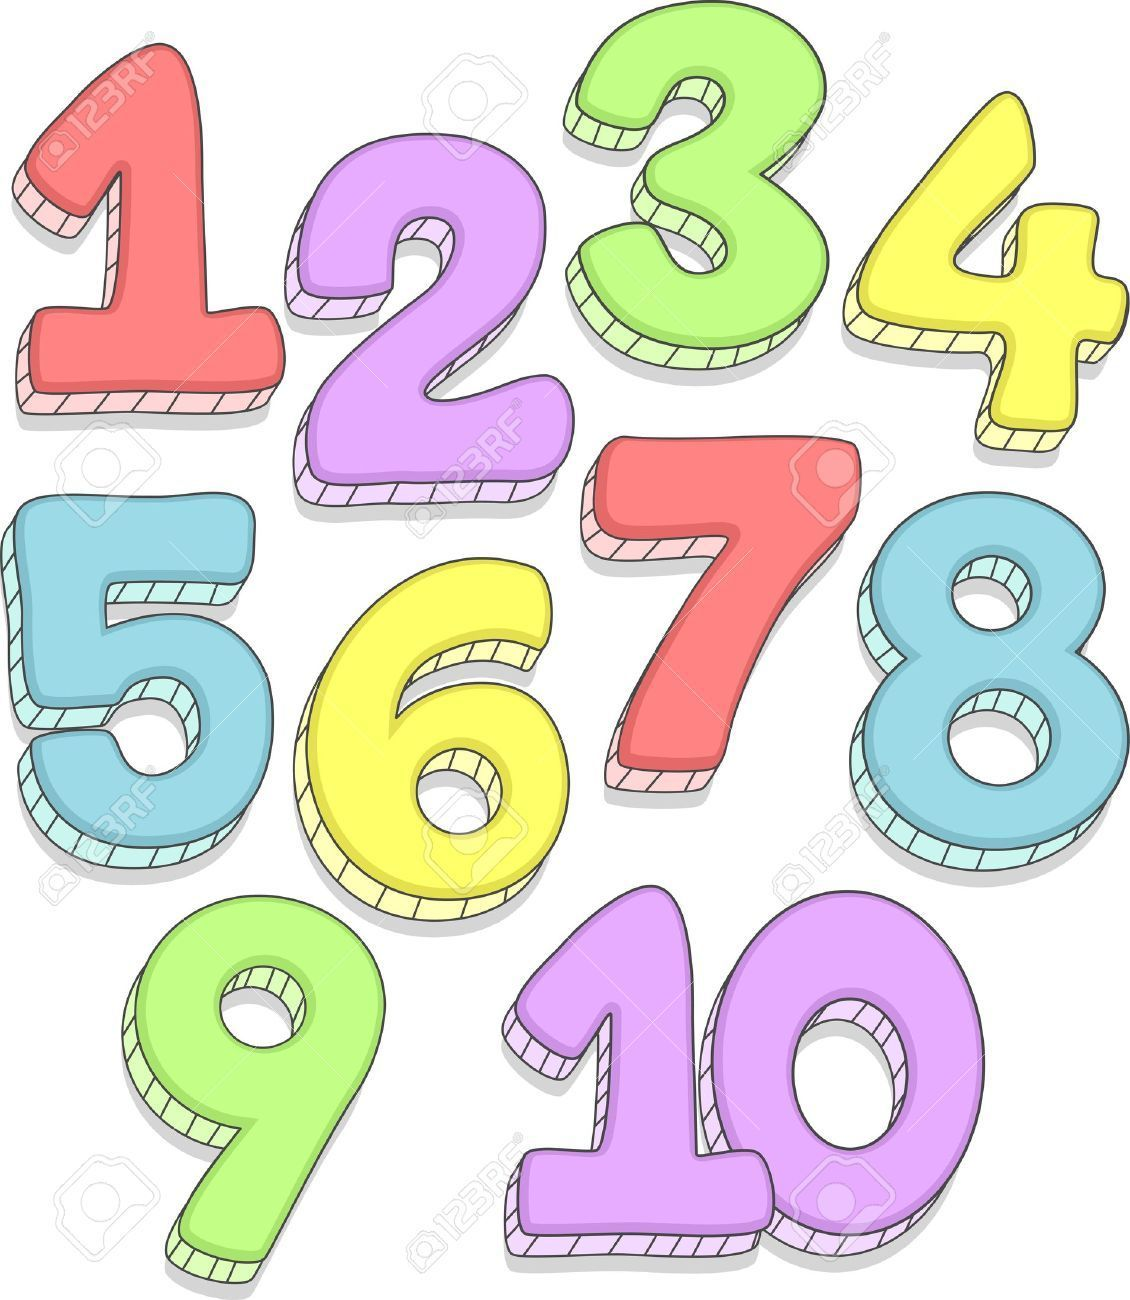 Cute numbers clipart 110 2 » Clipart Portal.